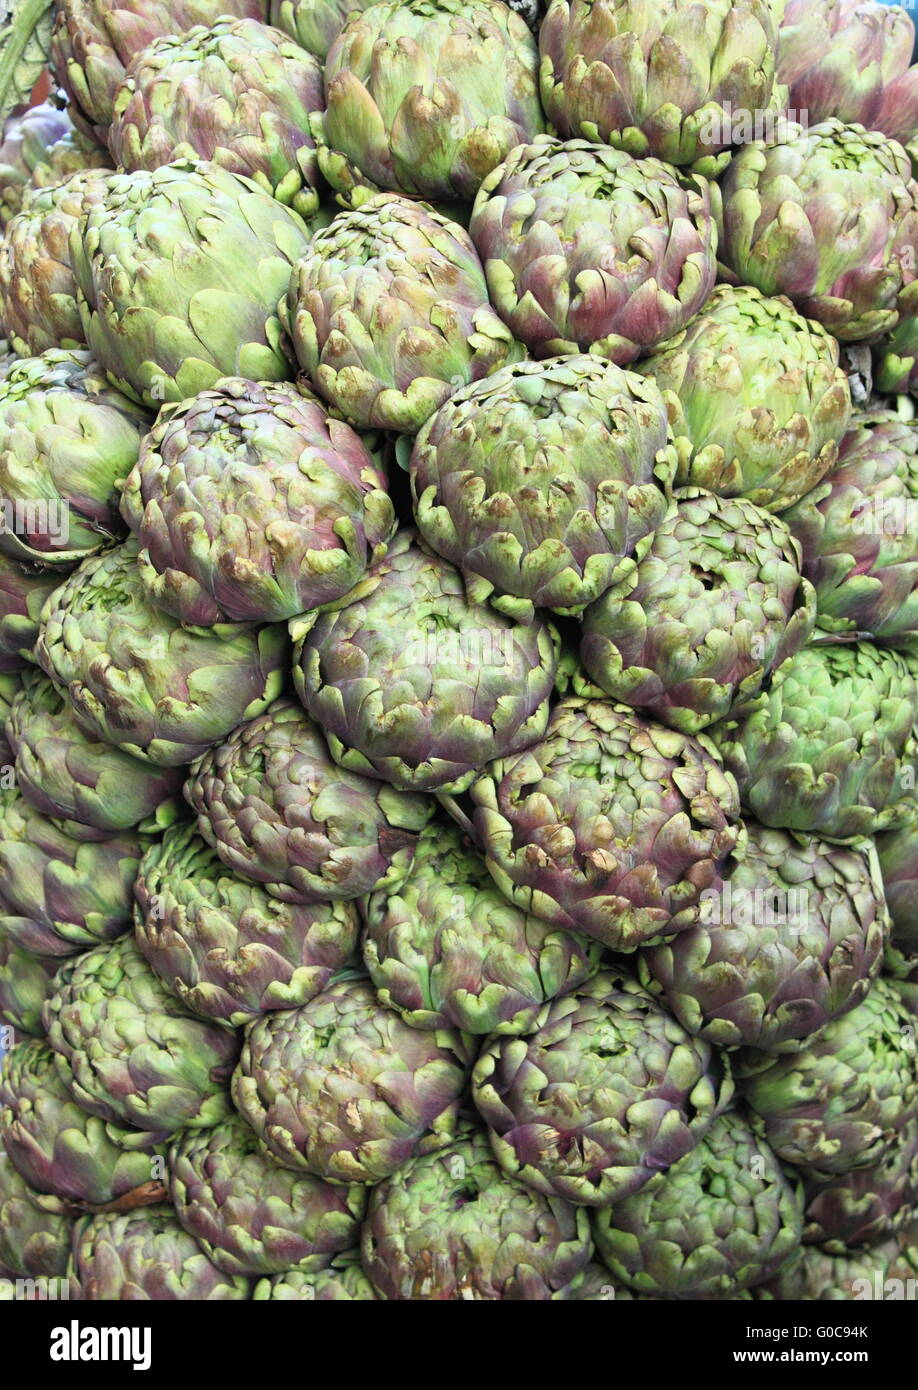 Composition of fresh artichokes in a greengrocery - Stock Image